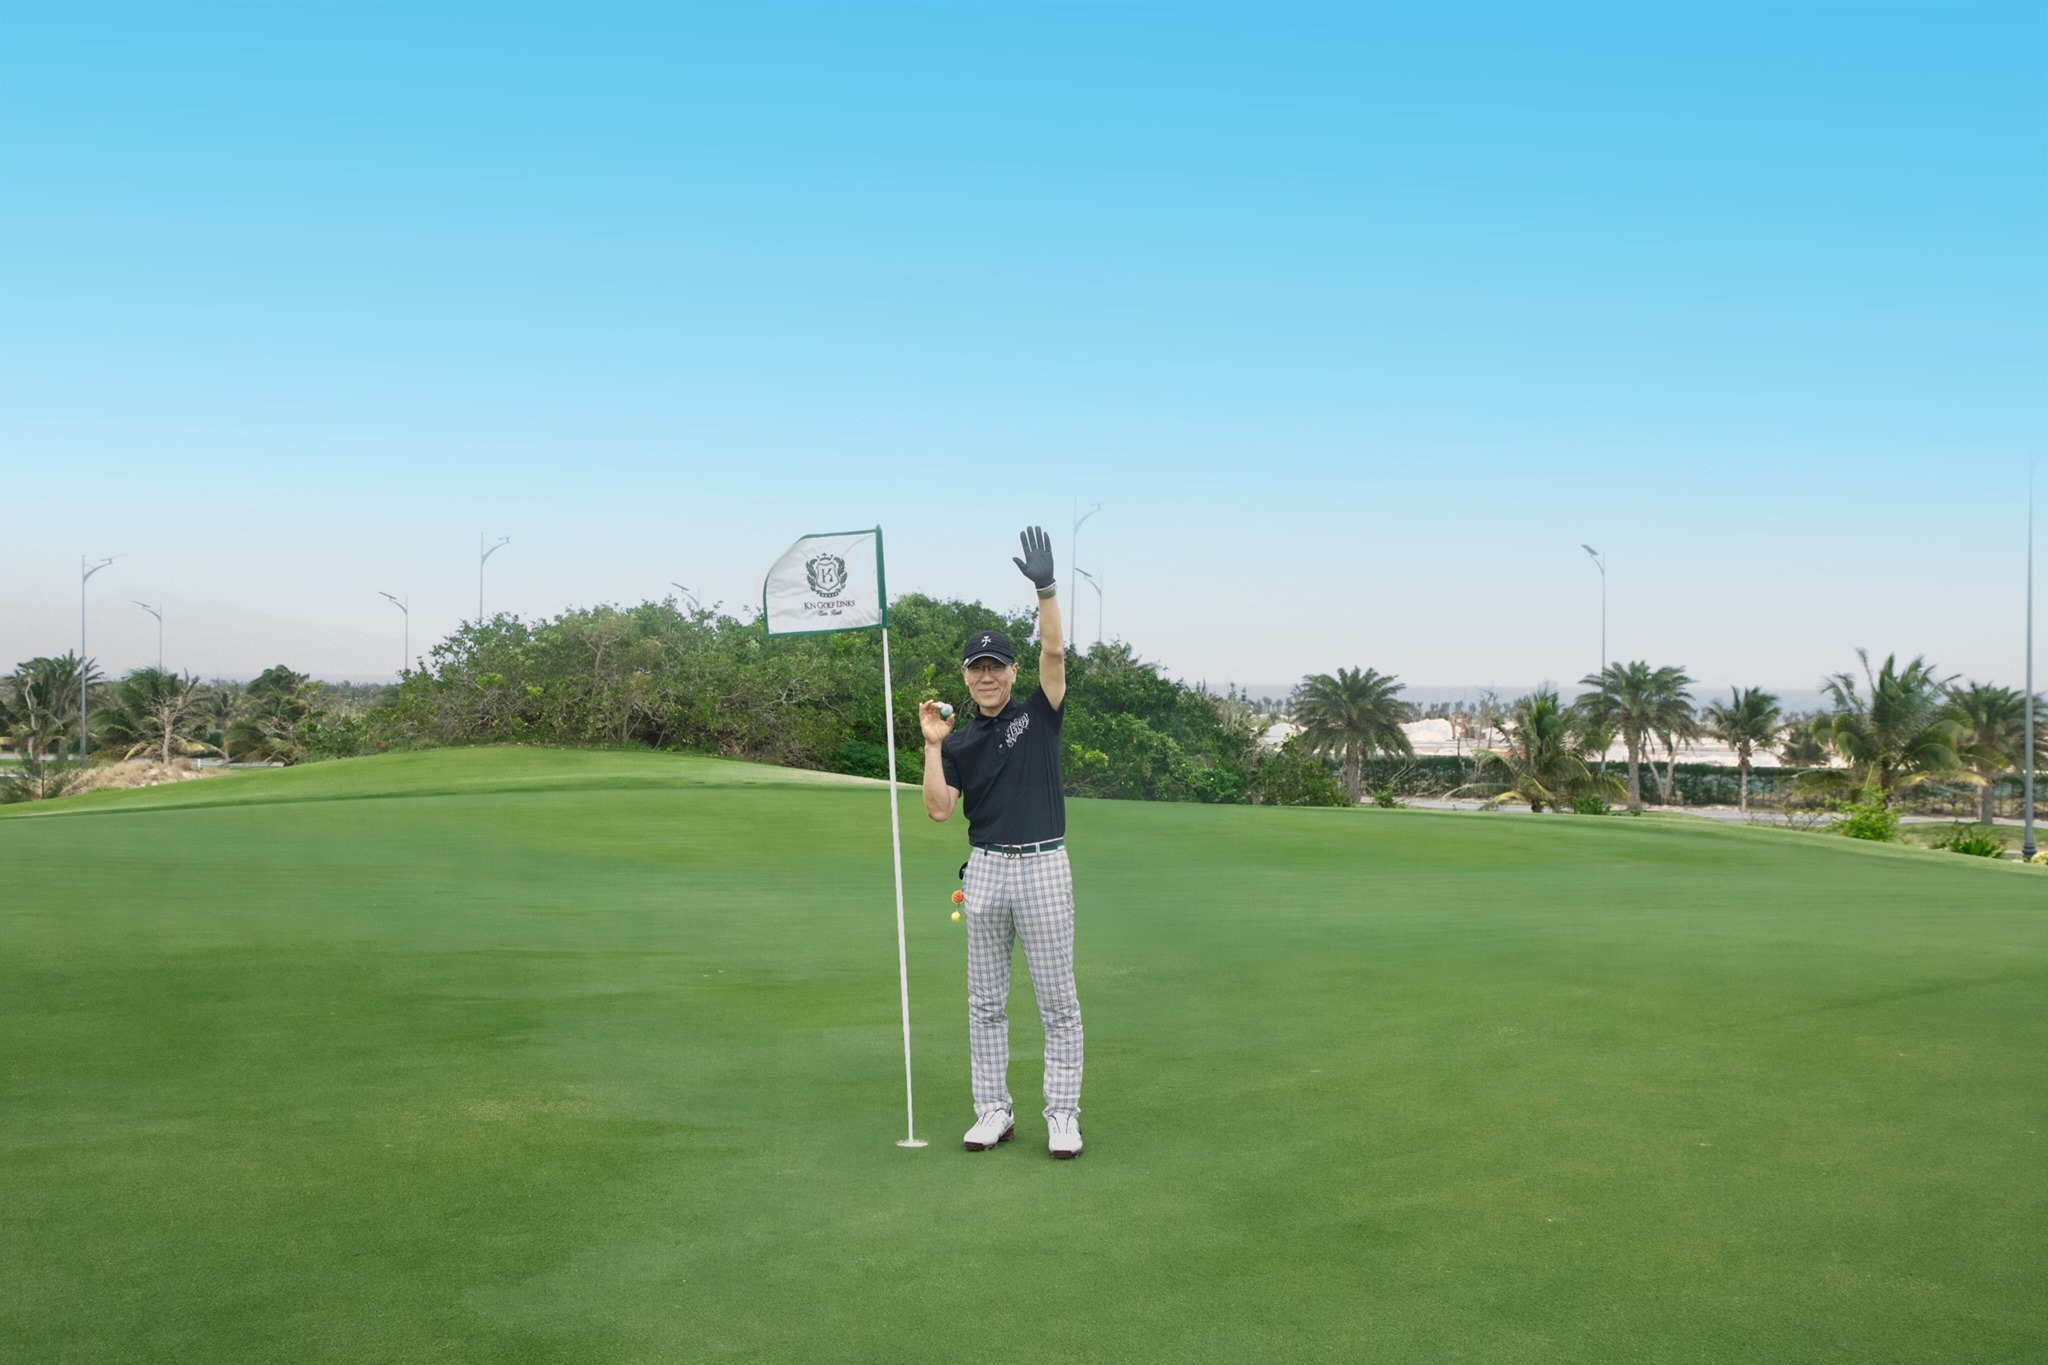 09 February, Links Course, Hole #16, Mr. Kwon Dae Hong